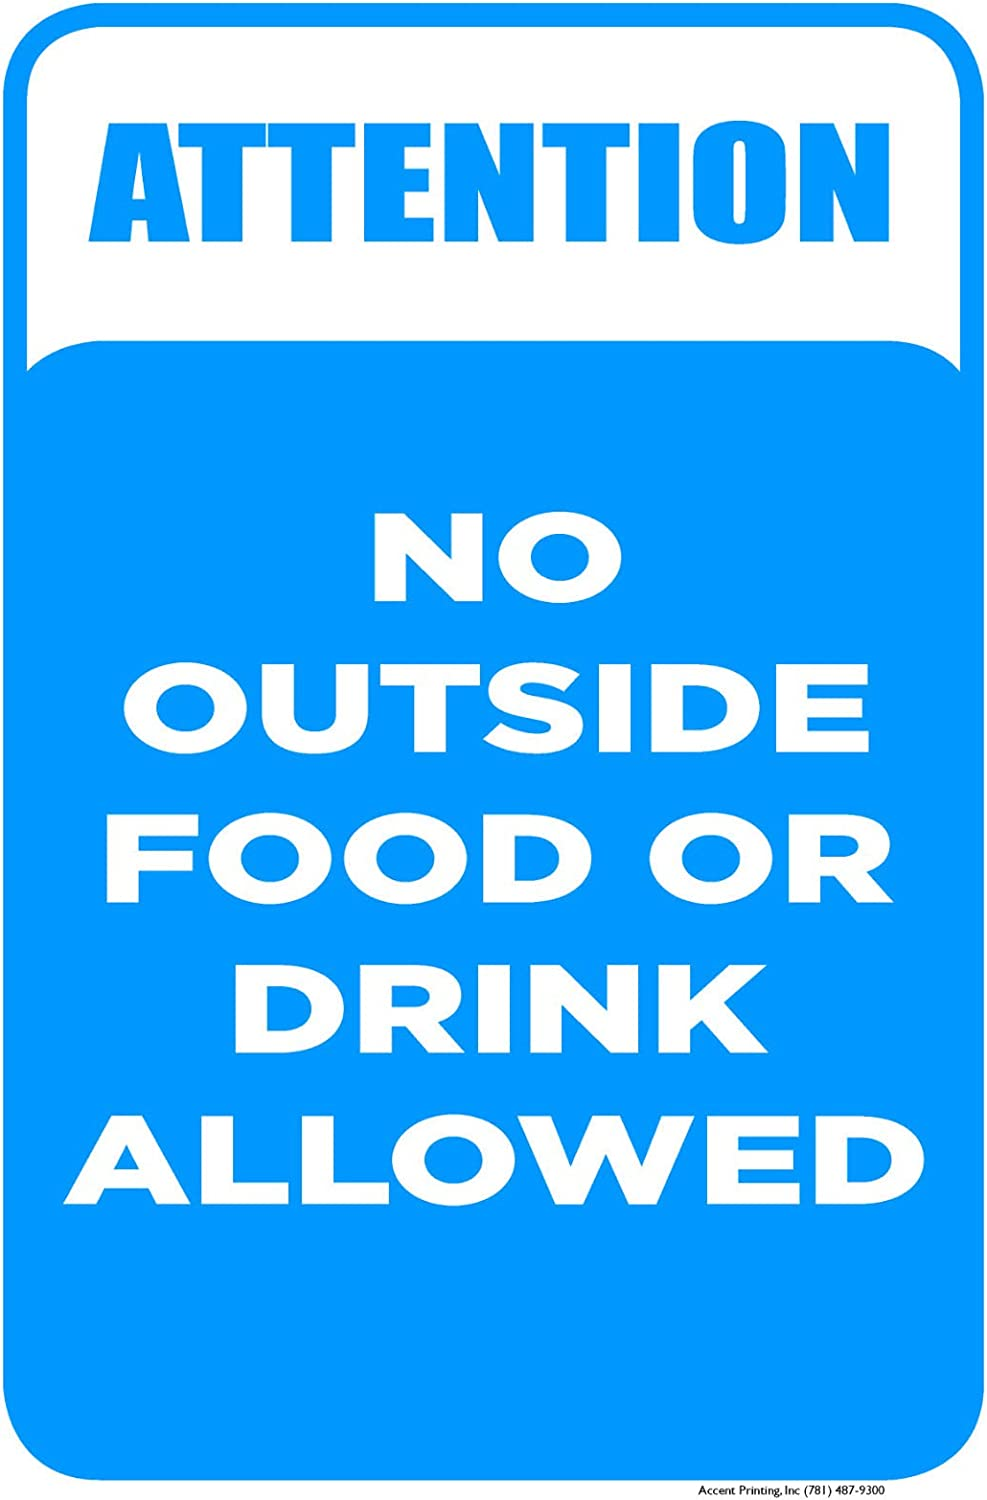 No Outside Food Or Drink Allowed | Easy to Mount Parking and Street Sign | 12